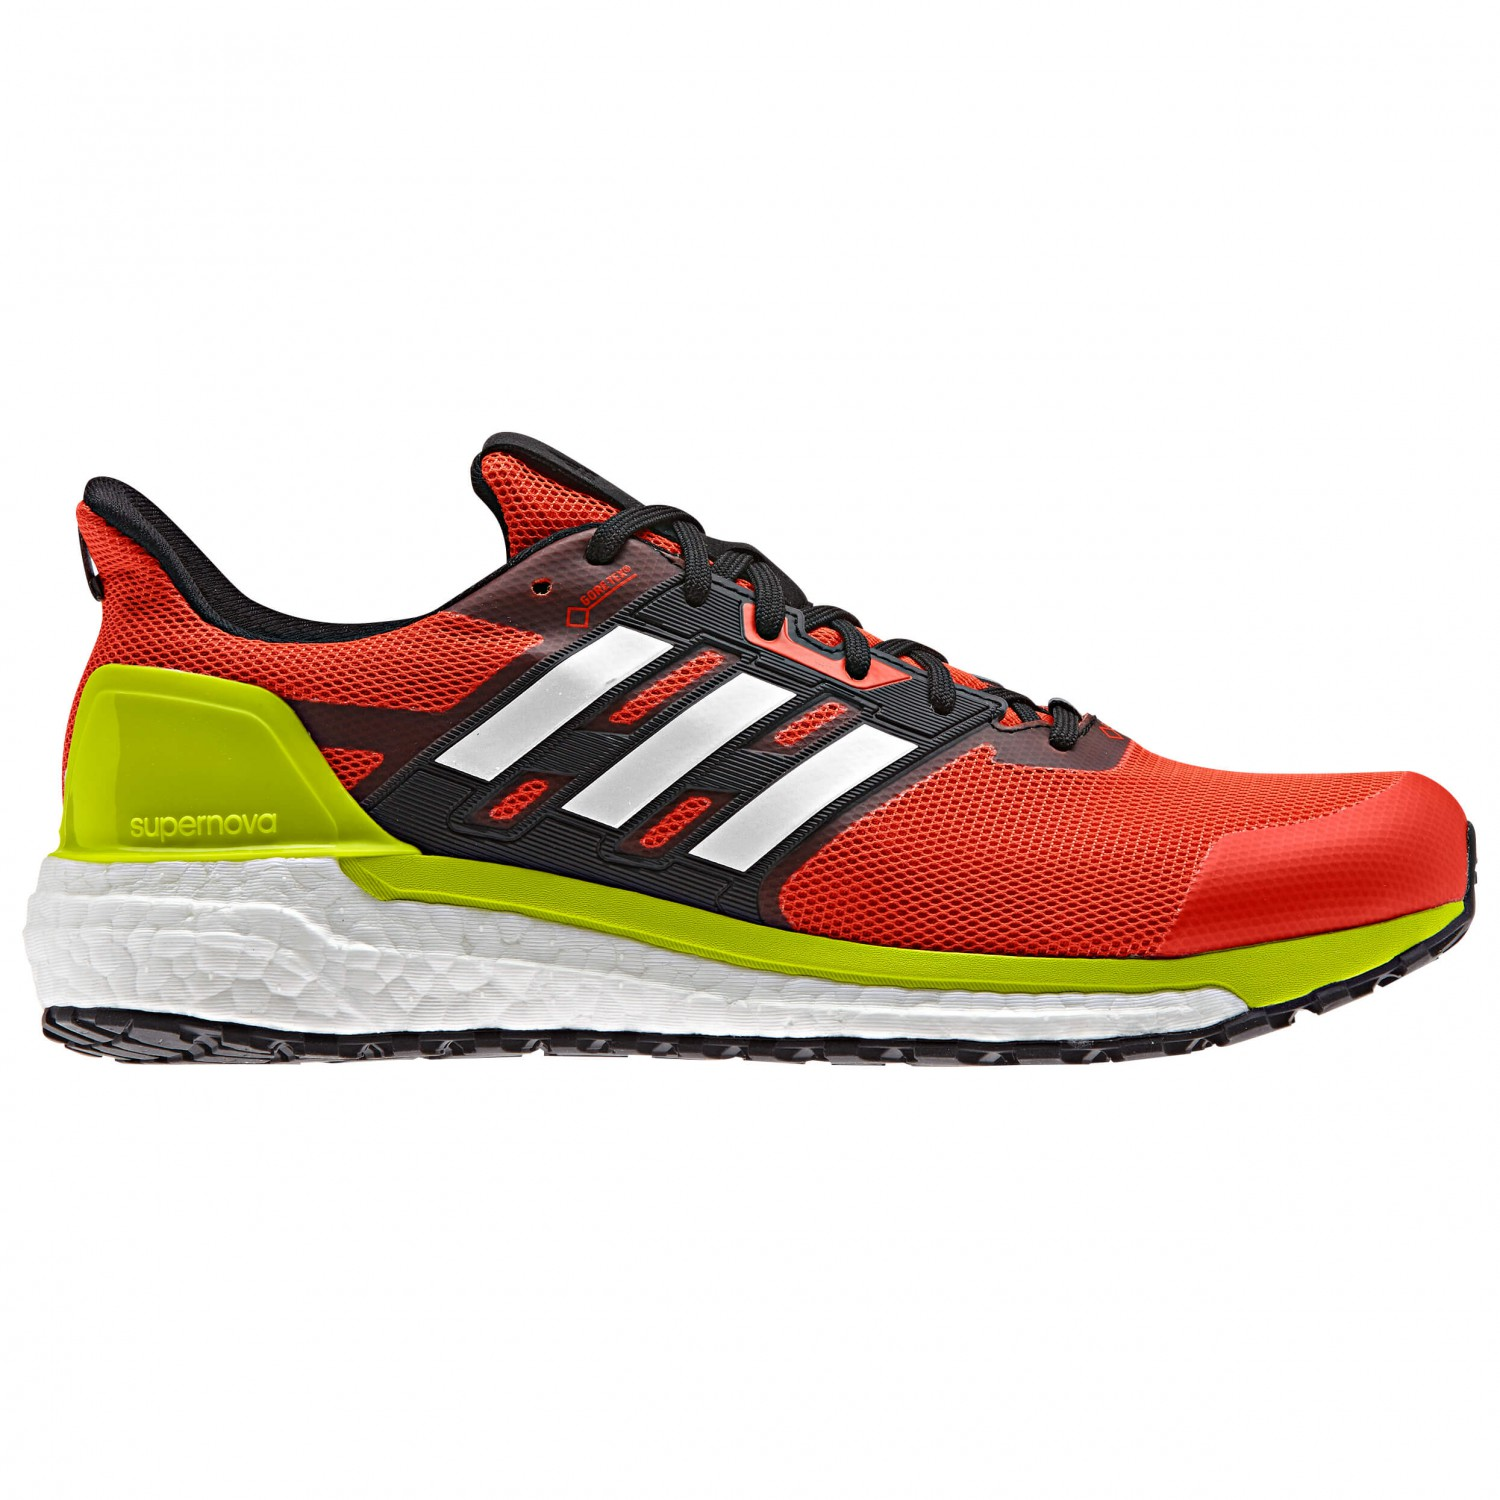 Adidas Supernova Trail Review - Best Running Shoes